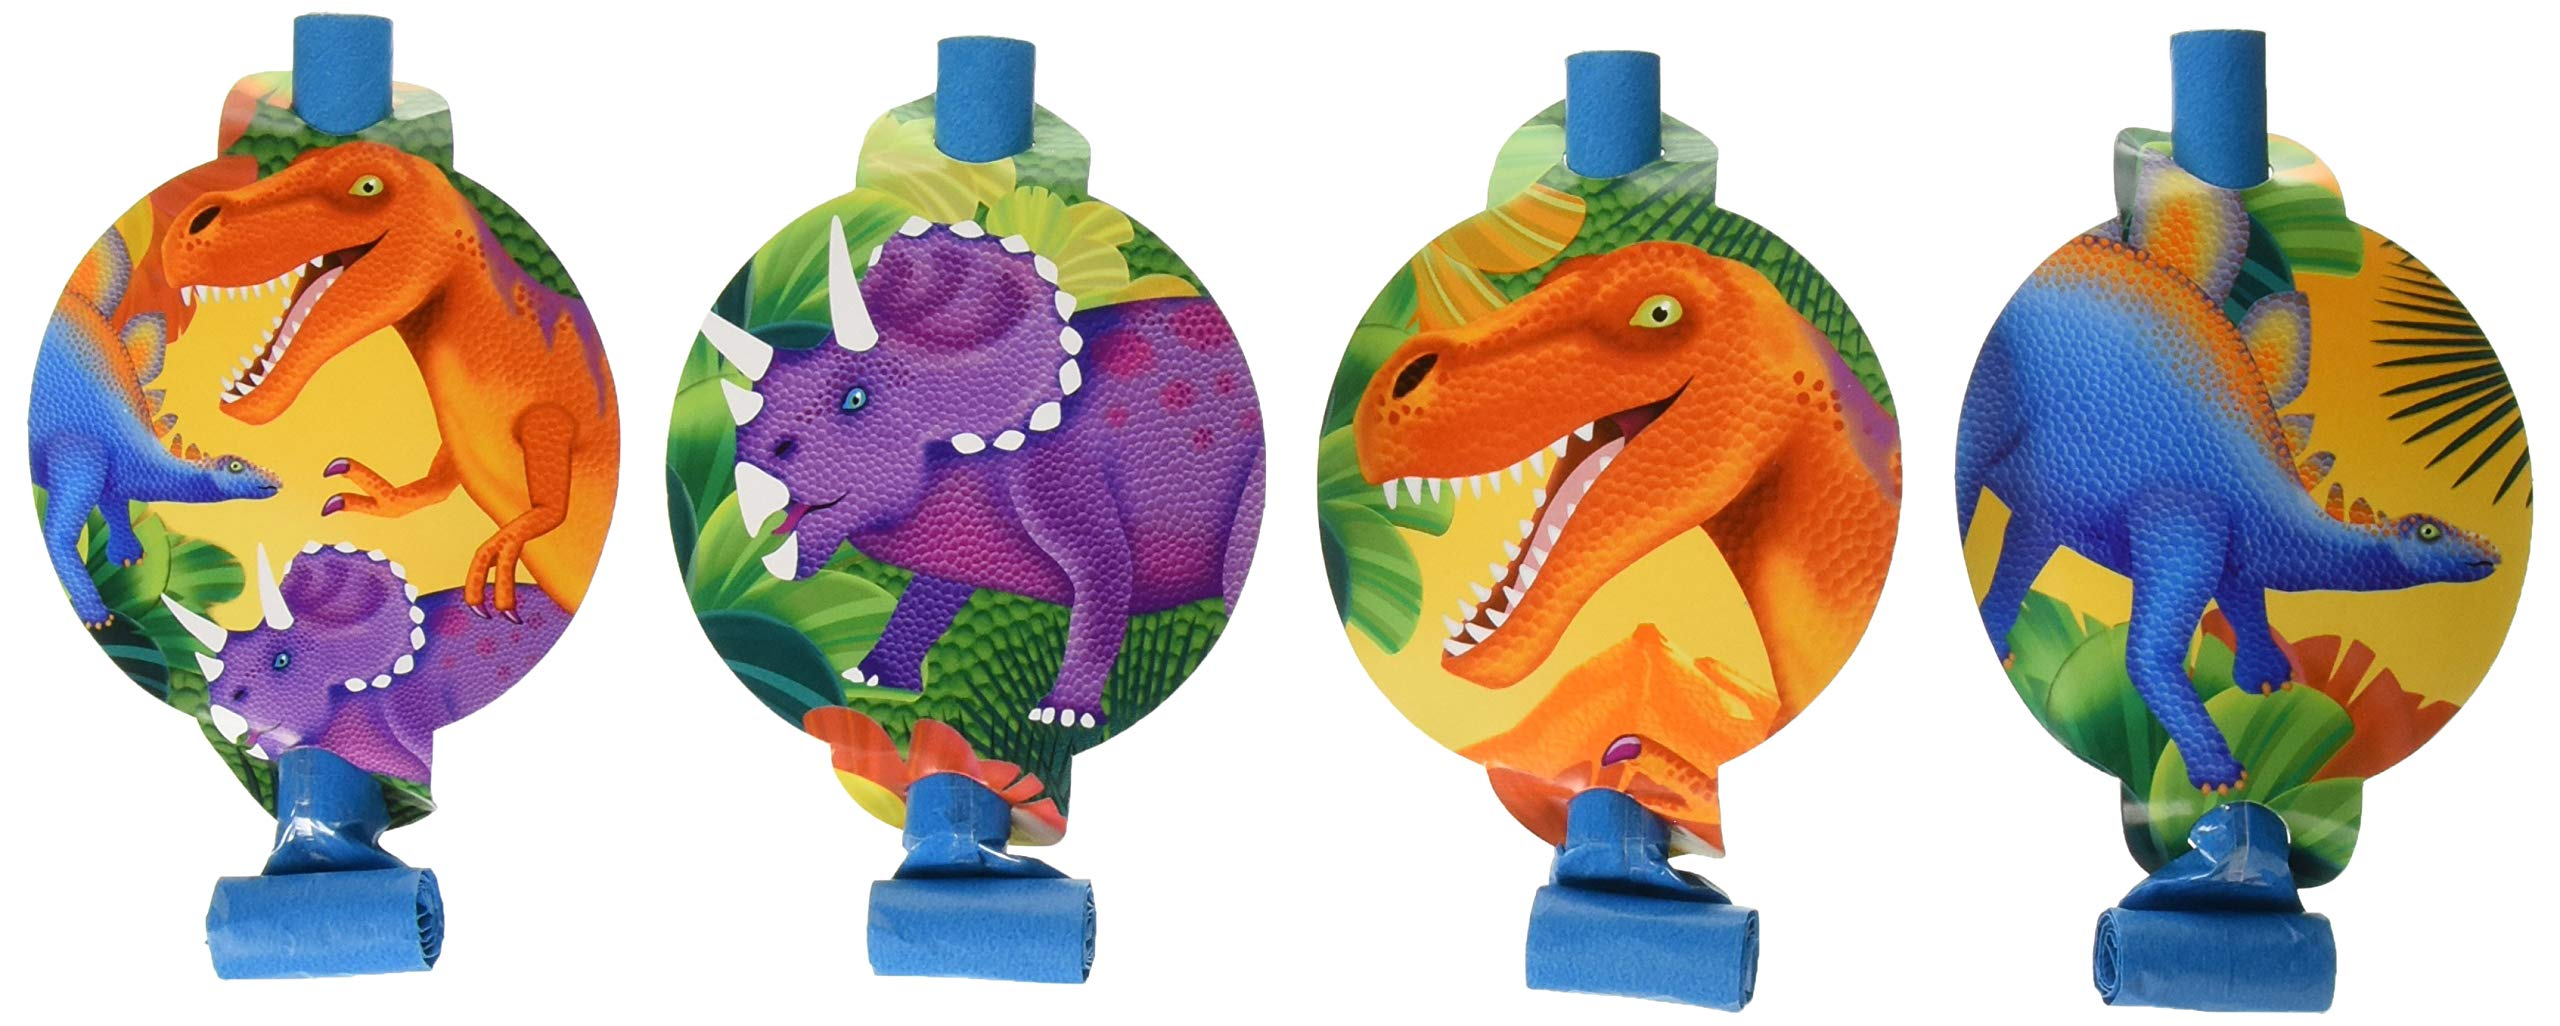 Amscan Prehistoric Dinosaurs Blowouts, Party Favor, 48 Ct.